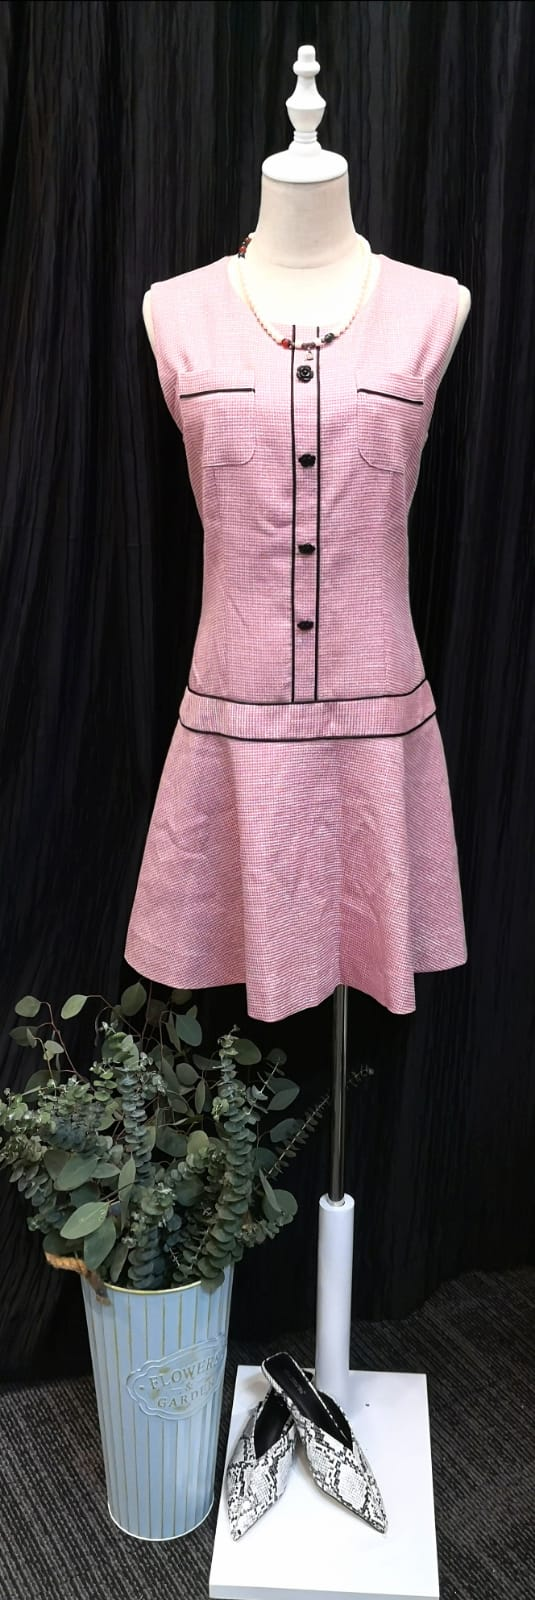 Baby Pink Sleeveless Buttoned-up Dress